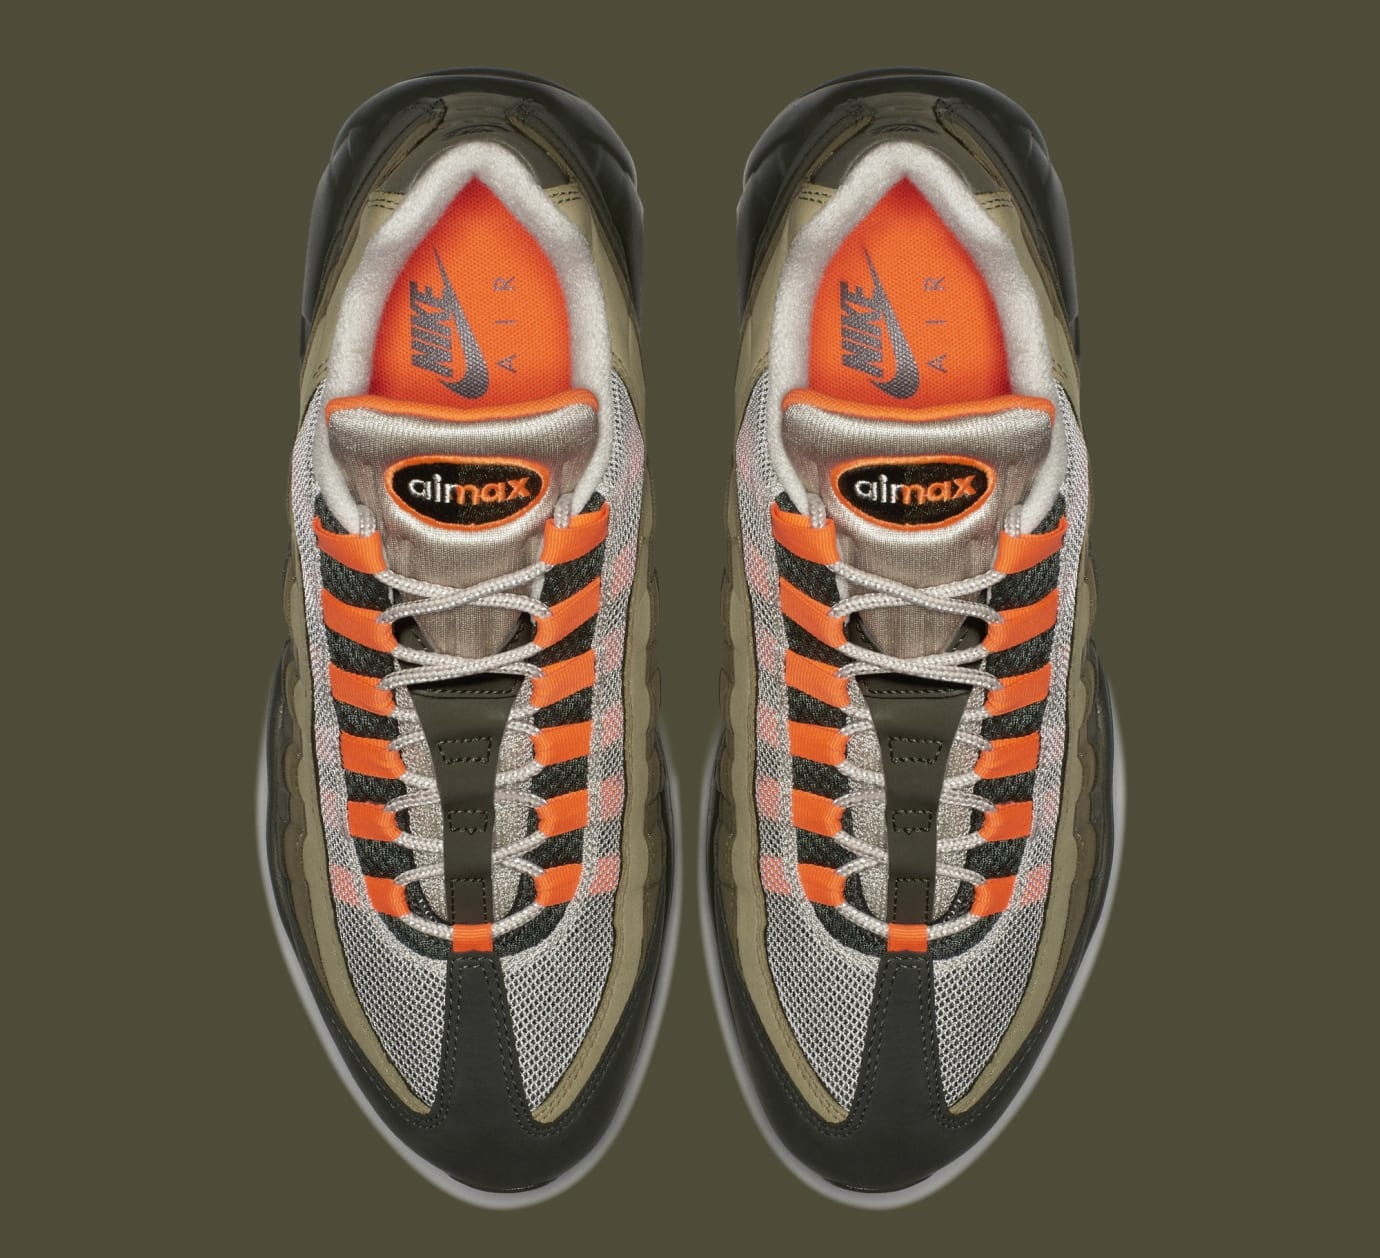 4895ab2df09 Image via Nike Nike Air Max 95 OG  String Total Orange Neutral Olive   AT2865-